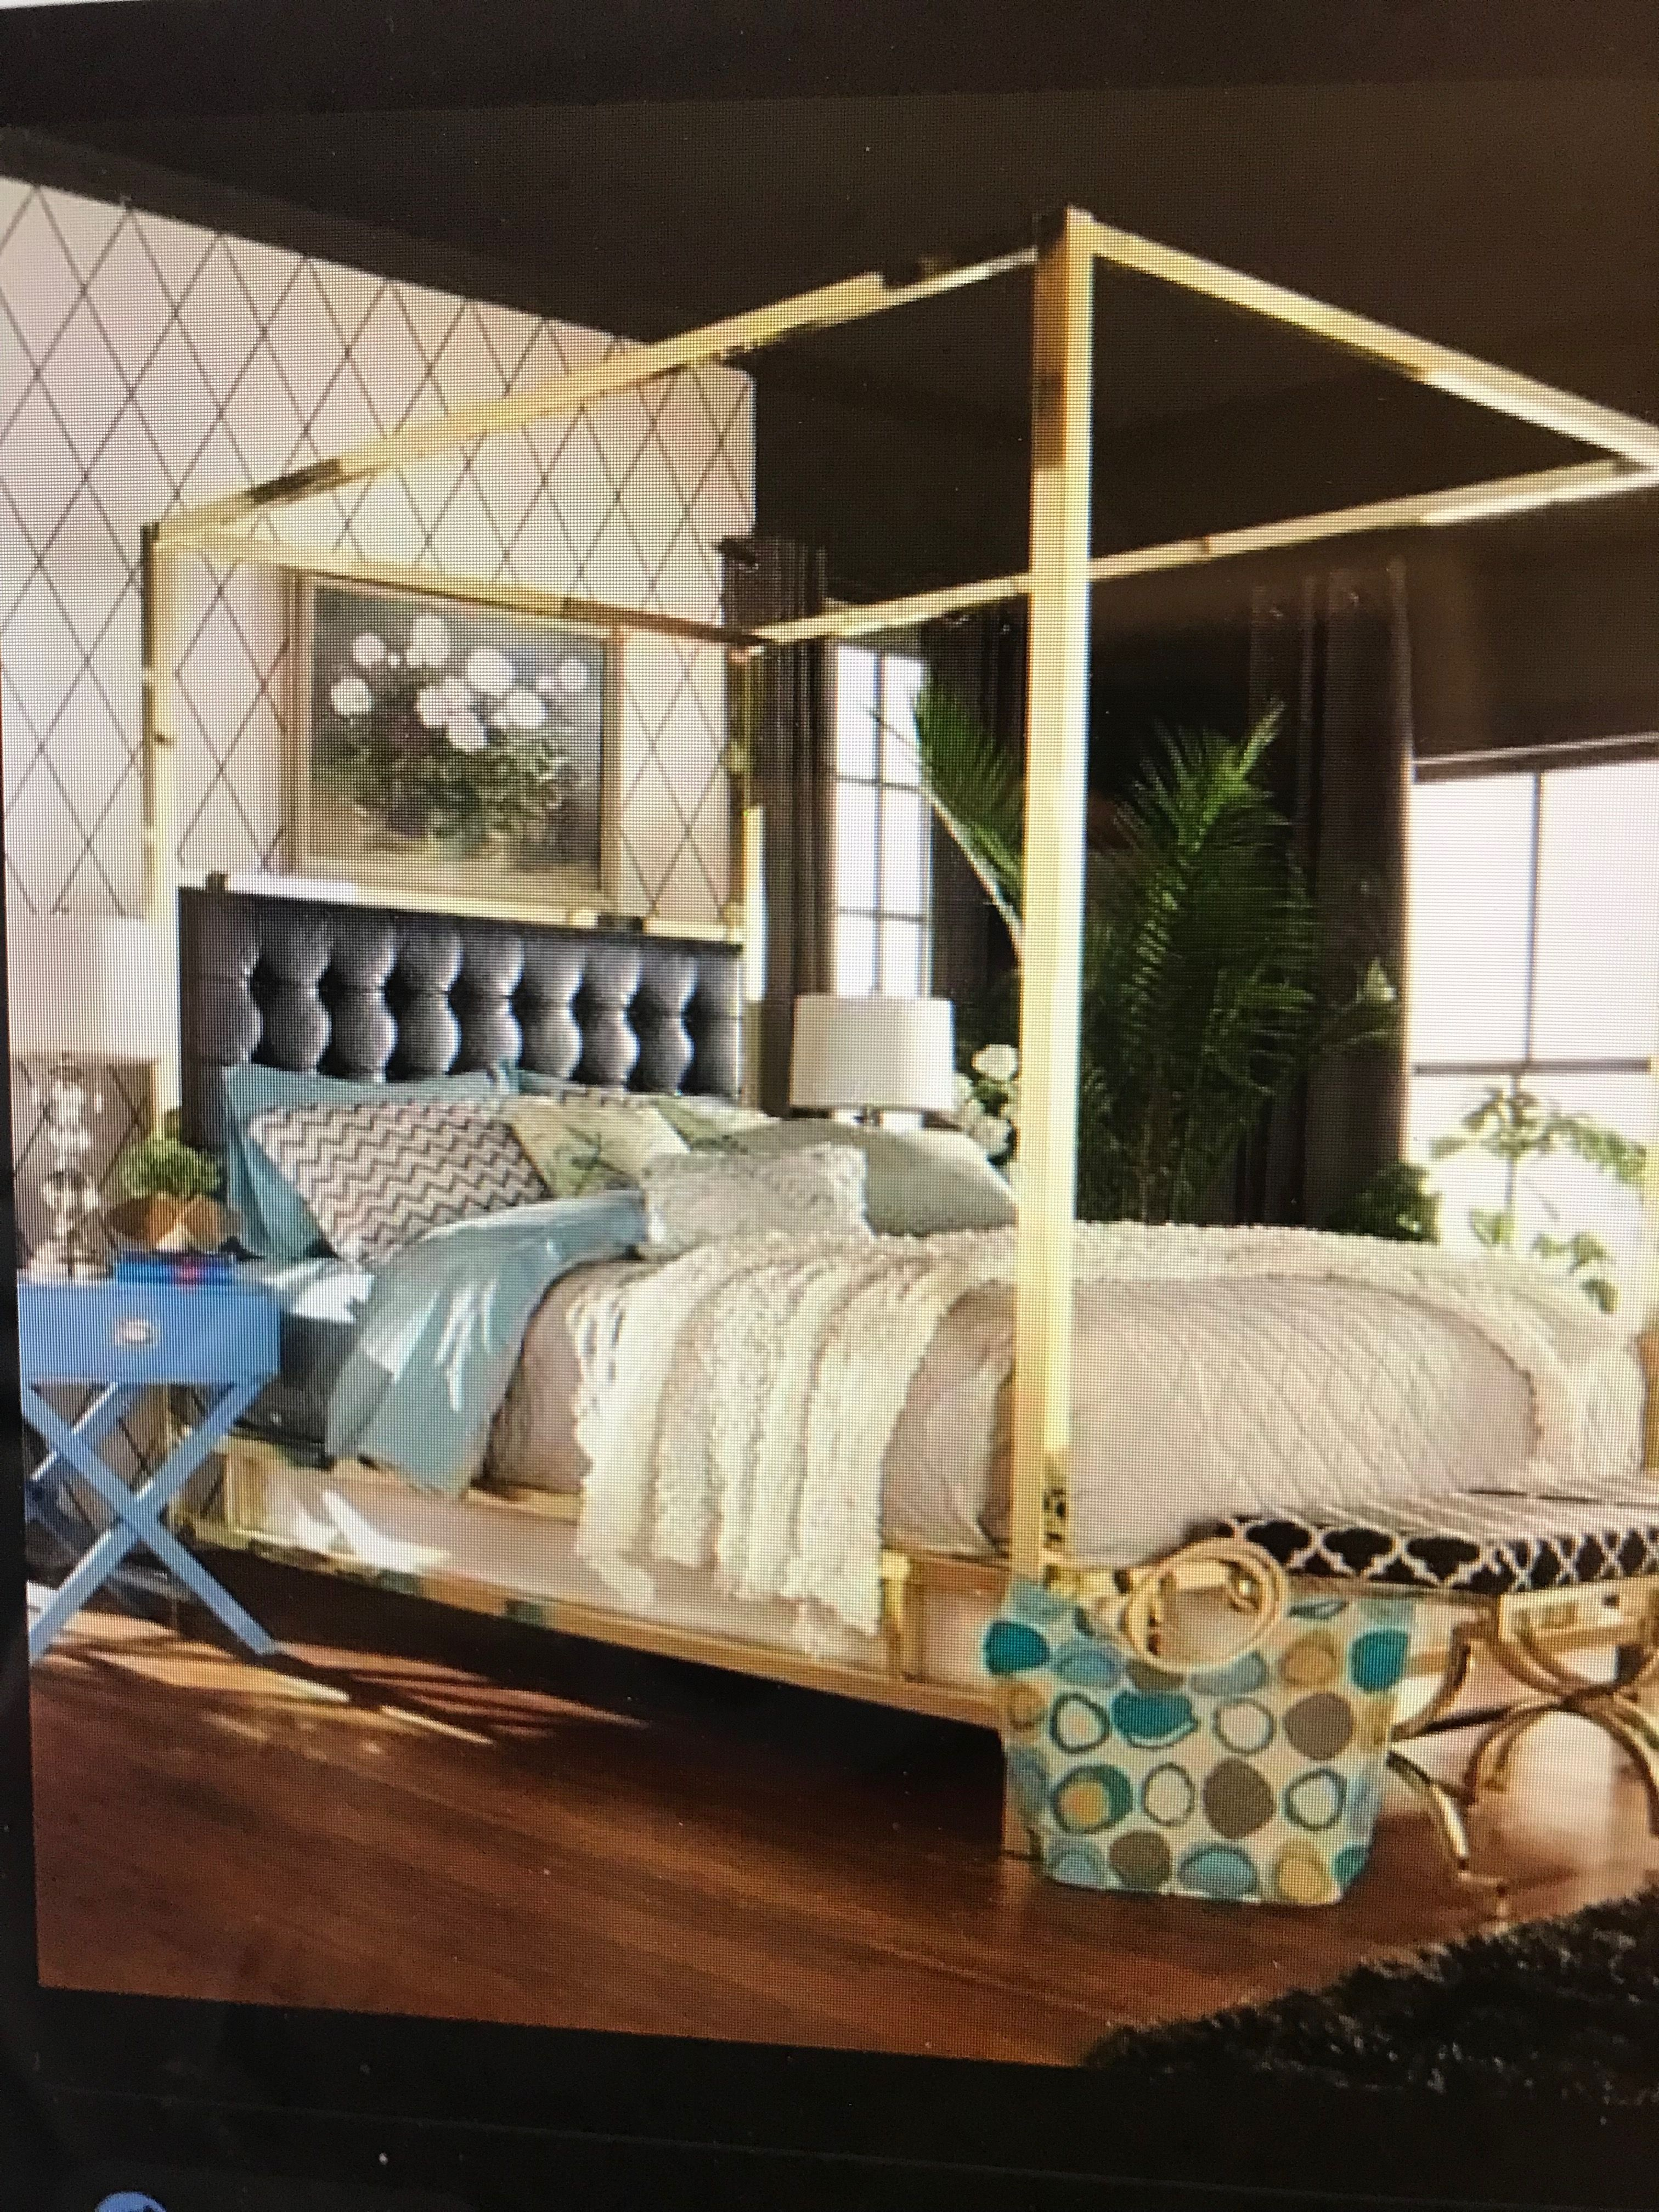 inspire q canopy bed on pin by ami vitori kimener on indigo pass black canopy beds canopy bed frame gold bed pinterest